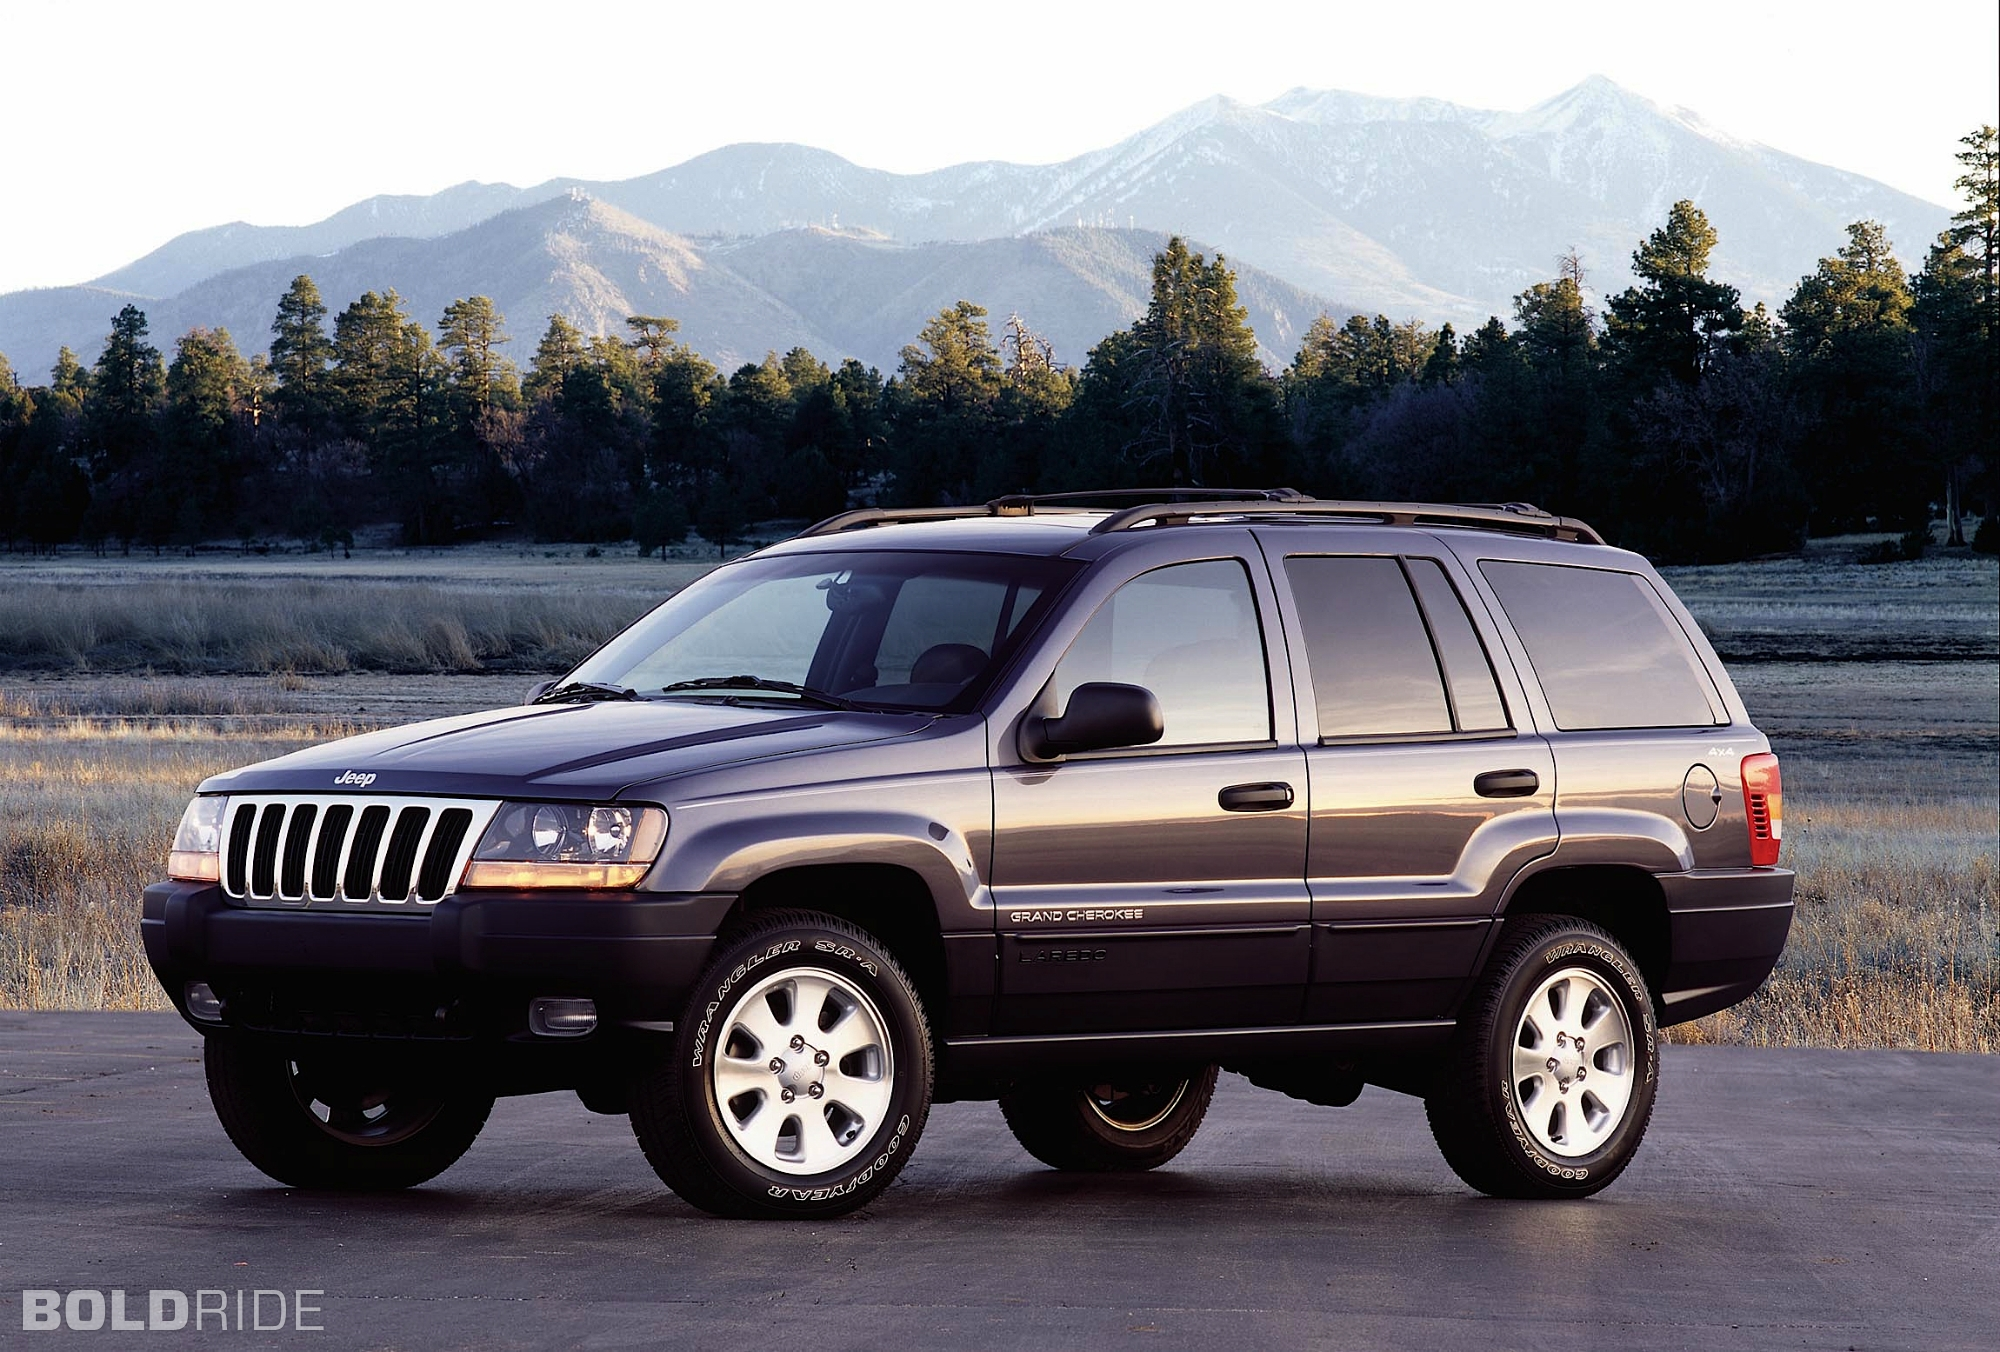 2000 jeep grand cherokee image 15 for Interieur jeep grand cherokee 2000